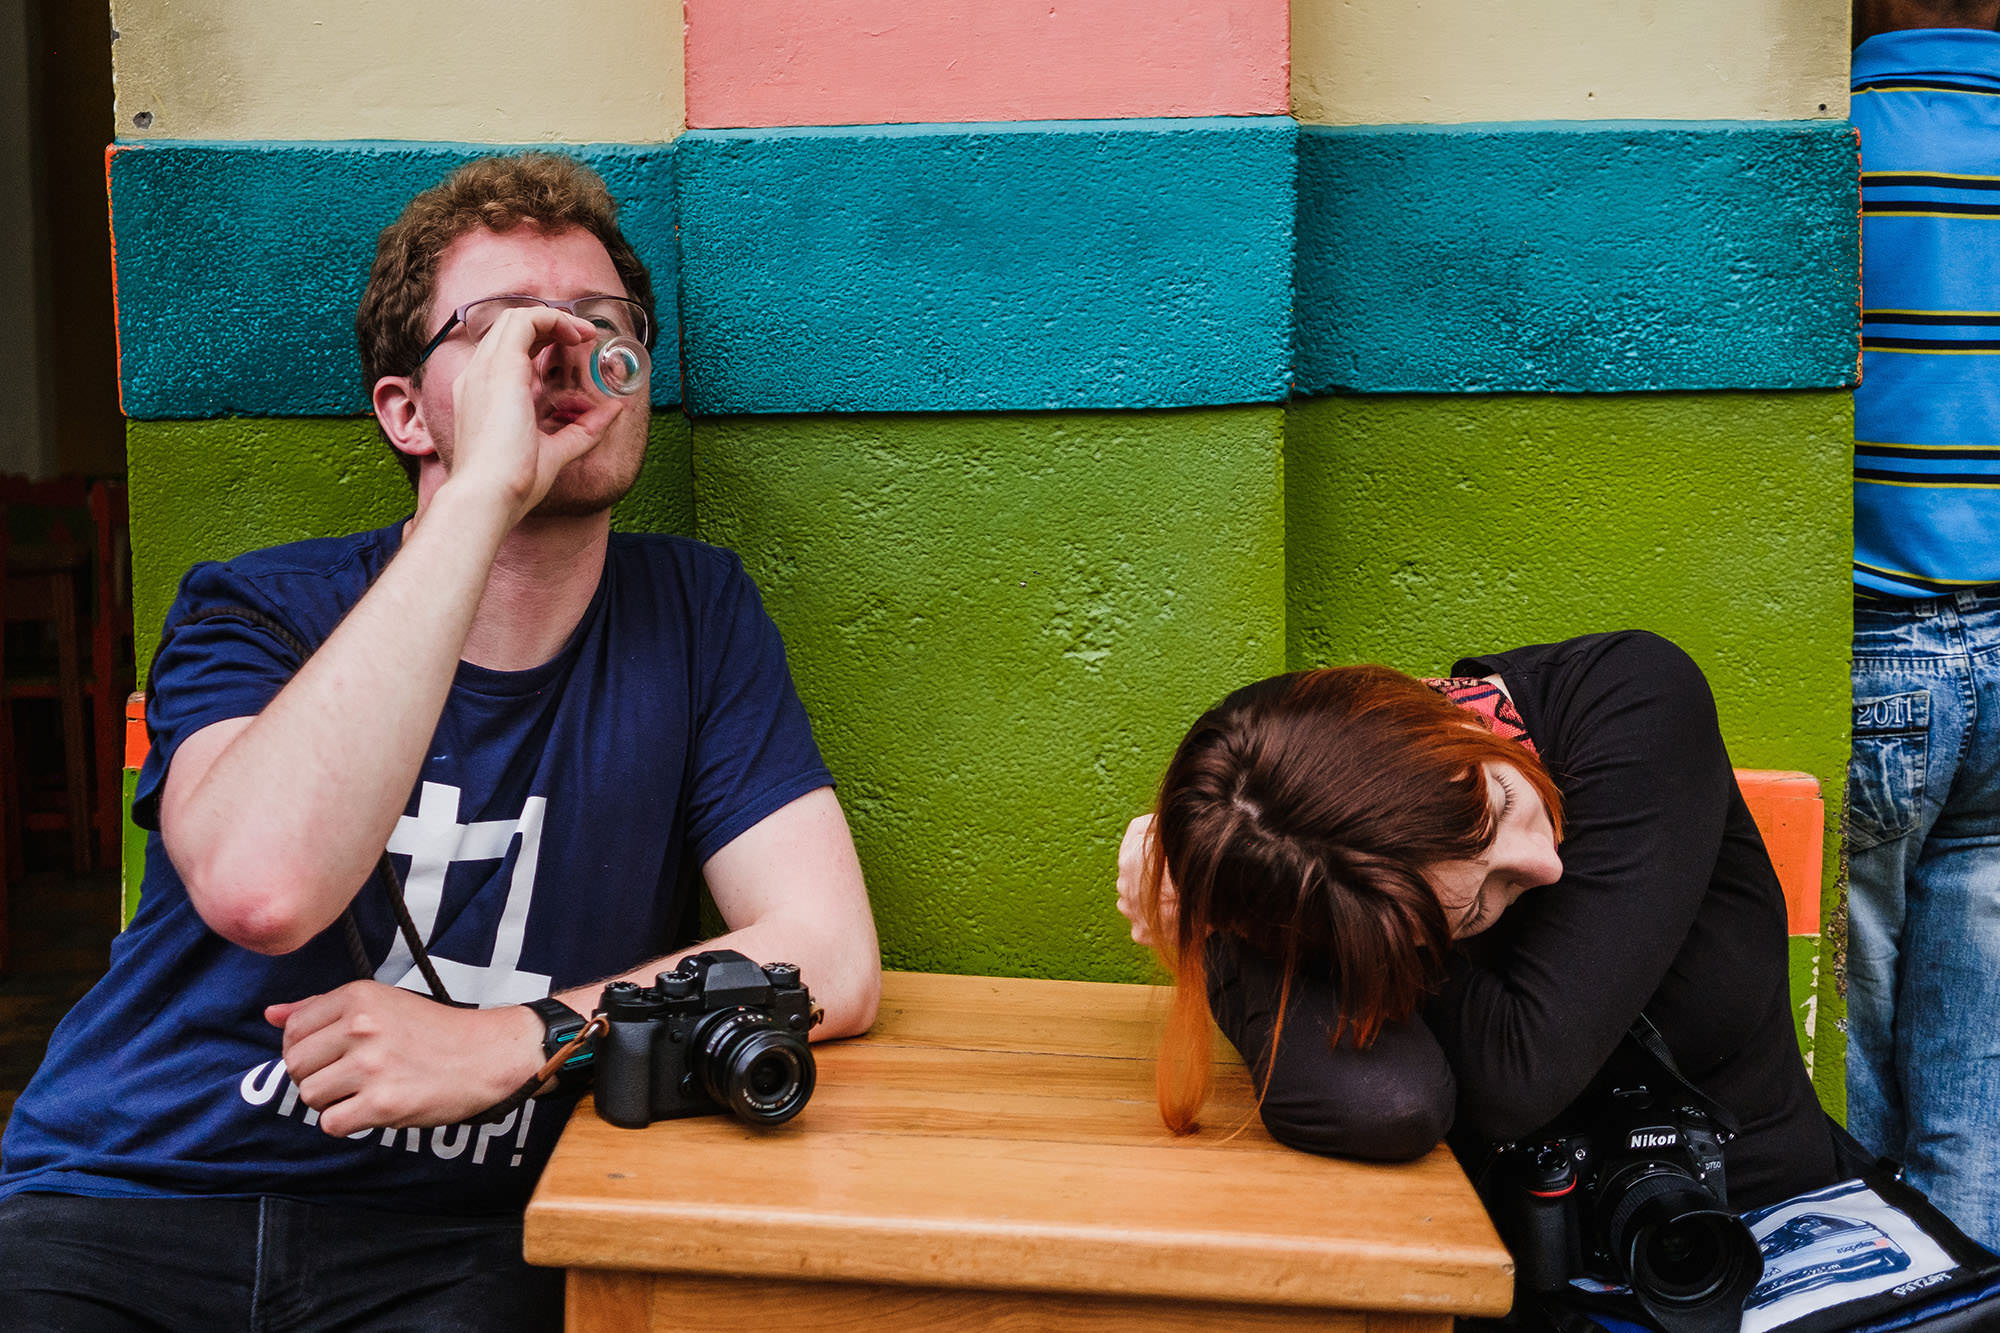 Street photographers in Colombia